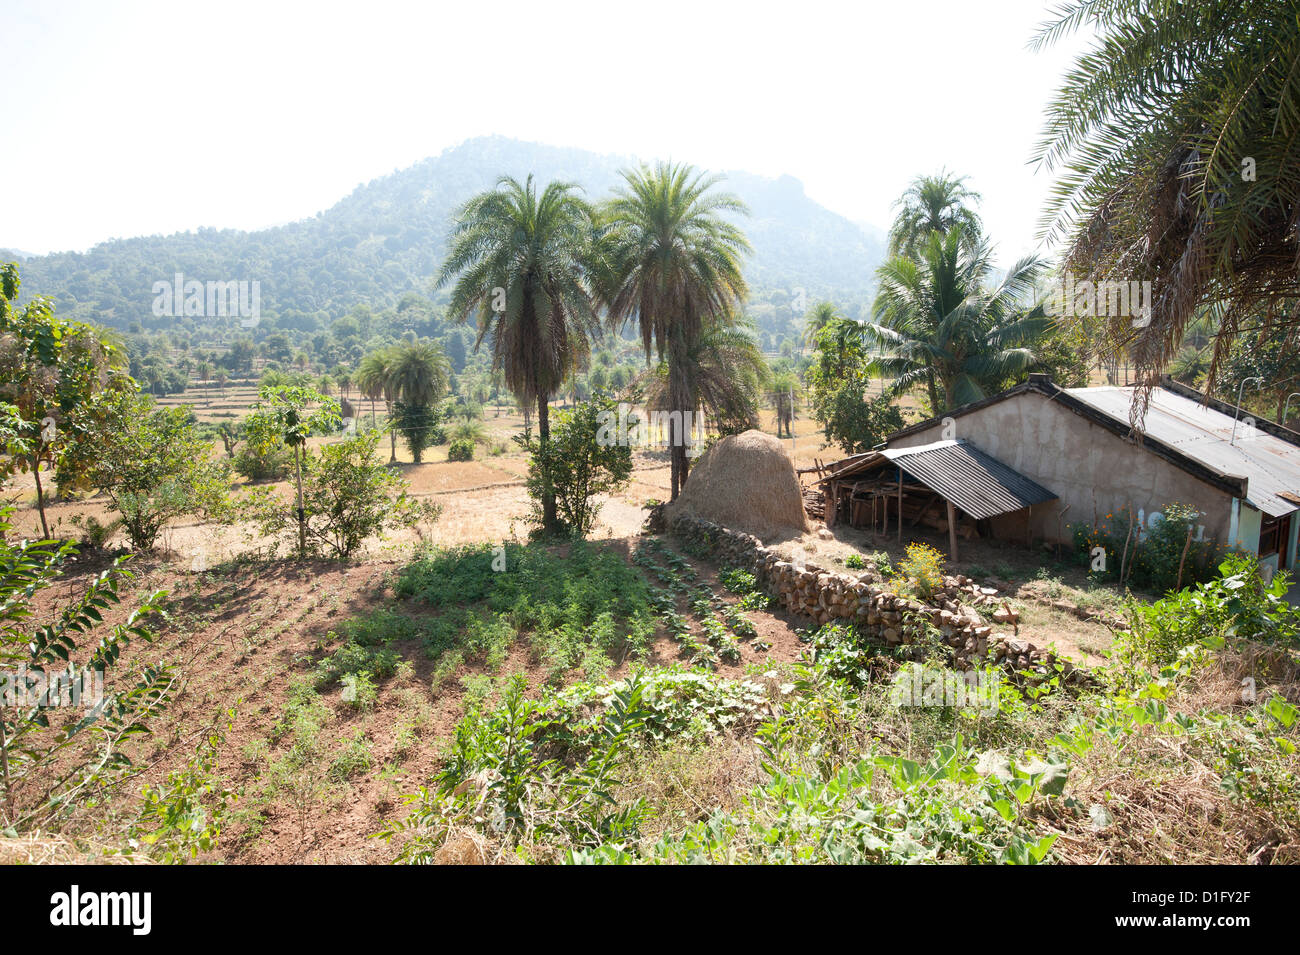 Vegetables growing in communal village plot in Saura tribal village, rural Orissa, India, Asia - Stock Image